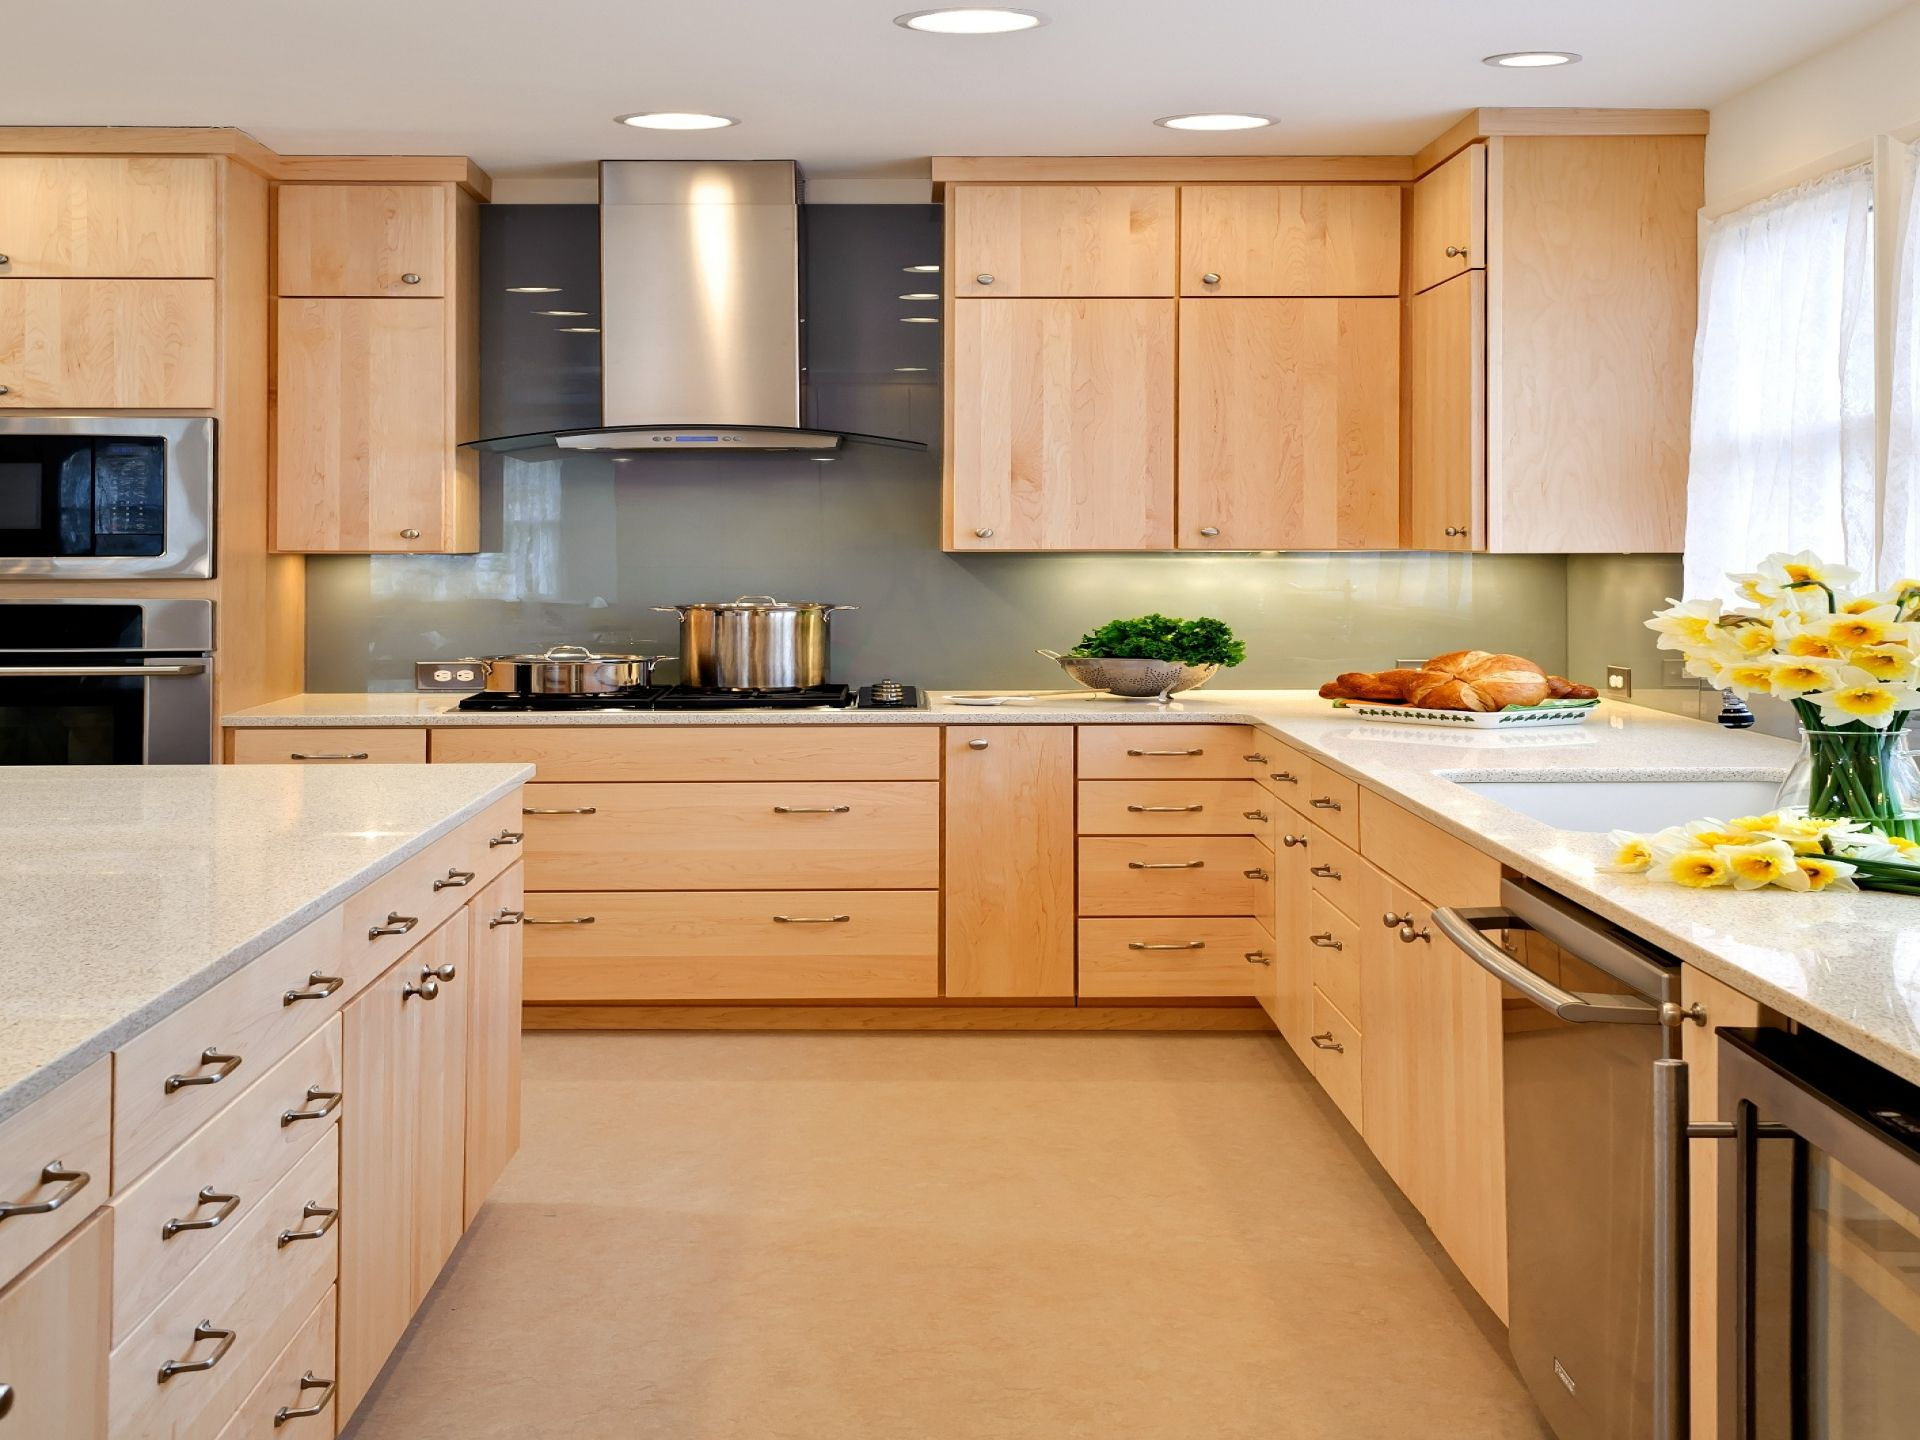 kitchens with maple cabinets Natural Maple Kitchen Cabinets Design Inspiration Kitchen